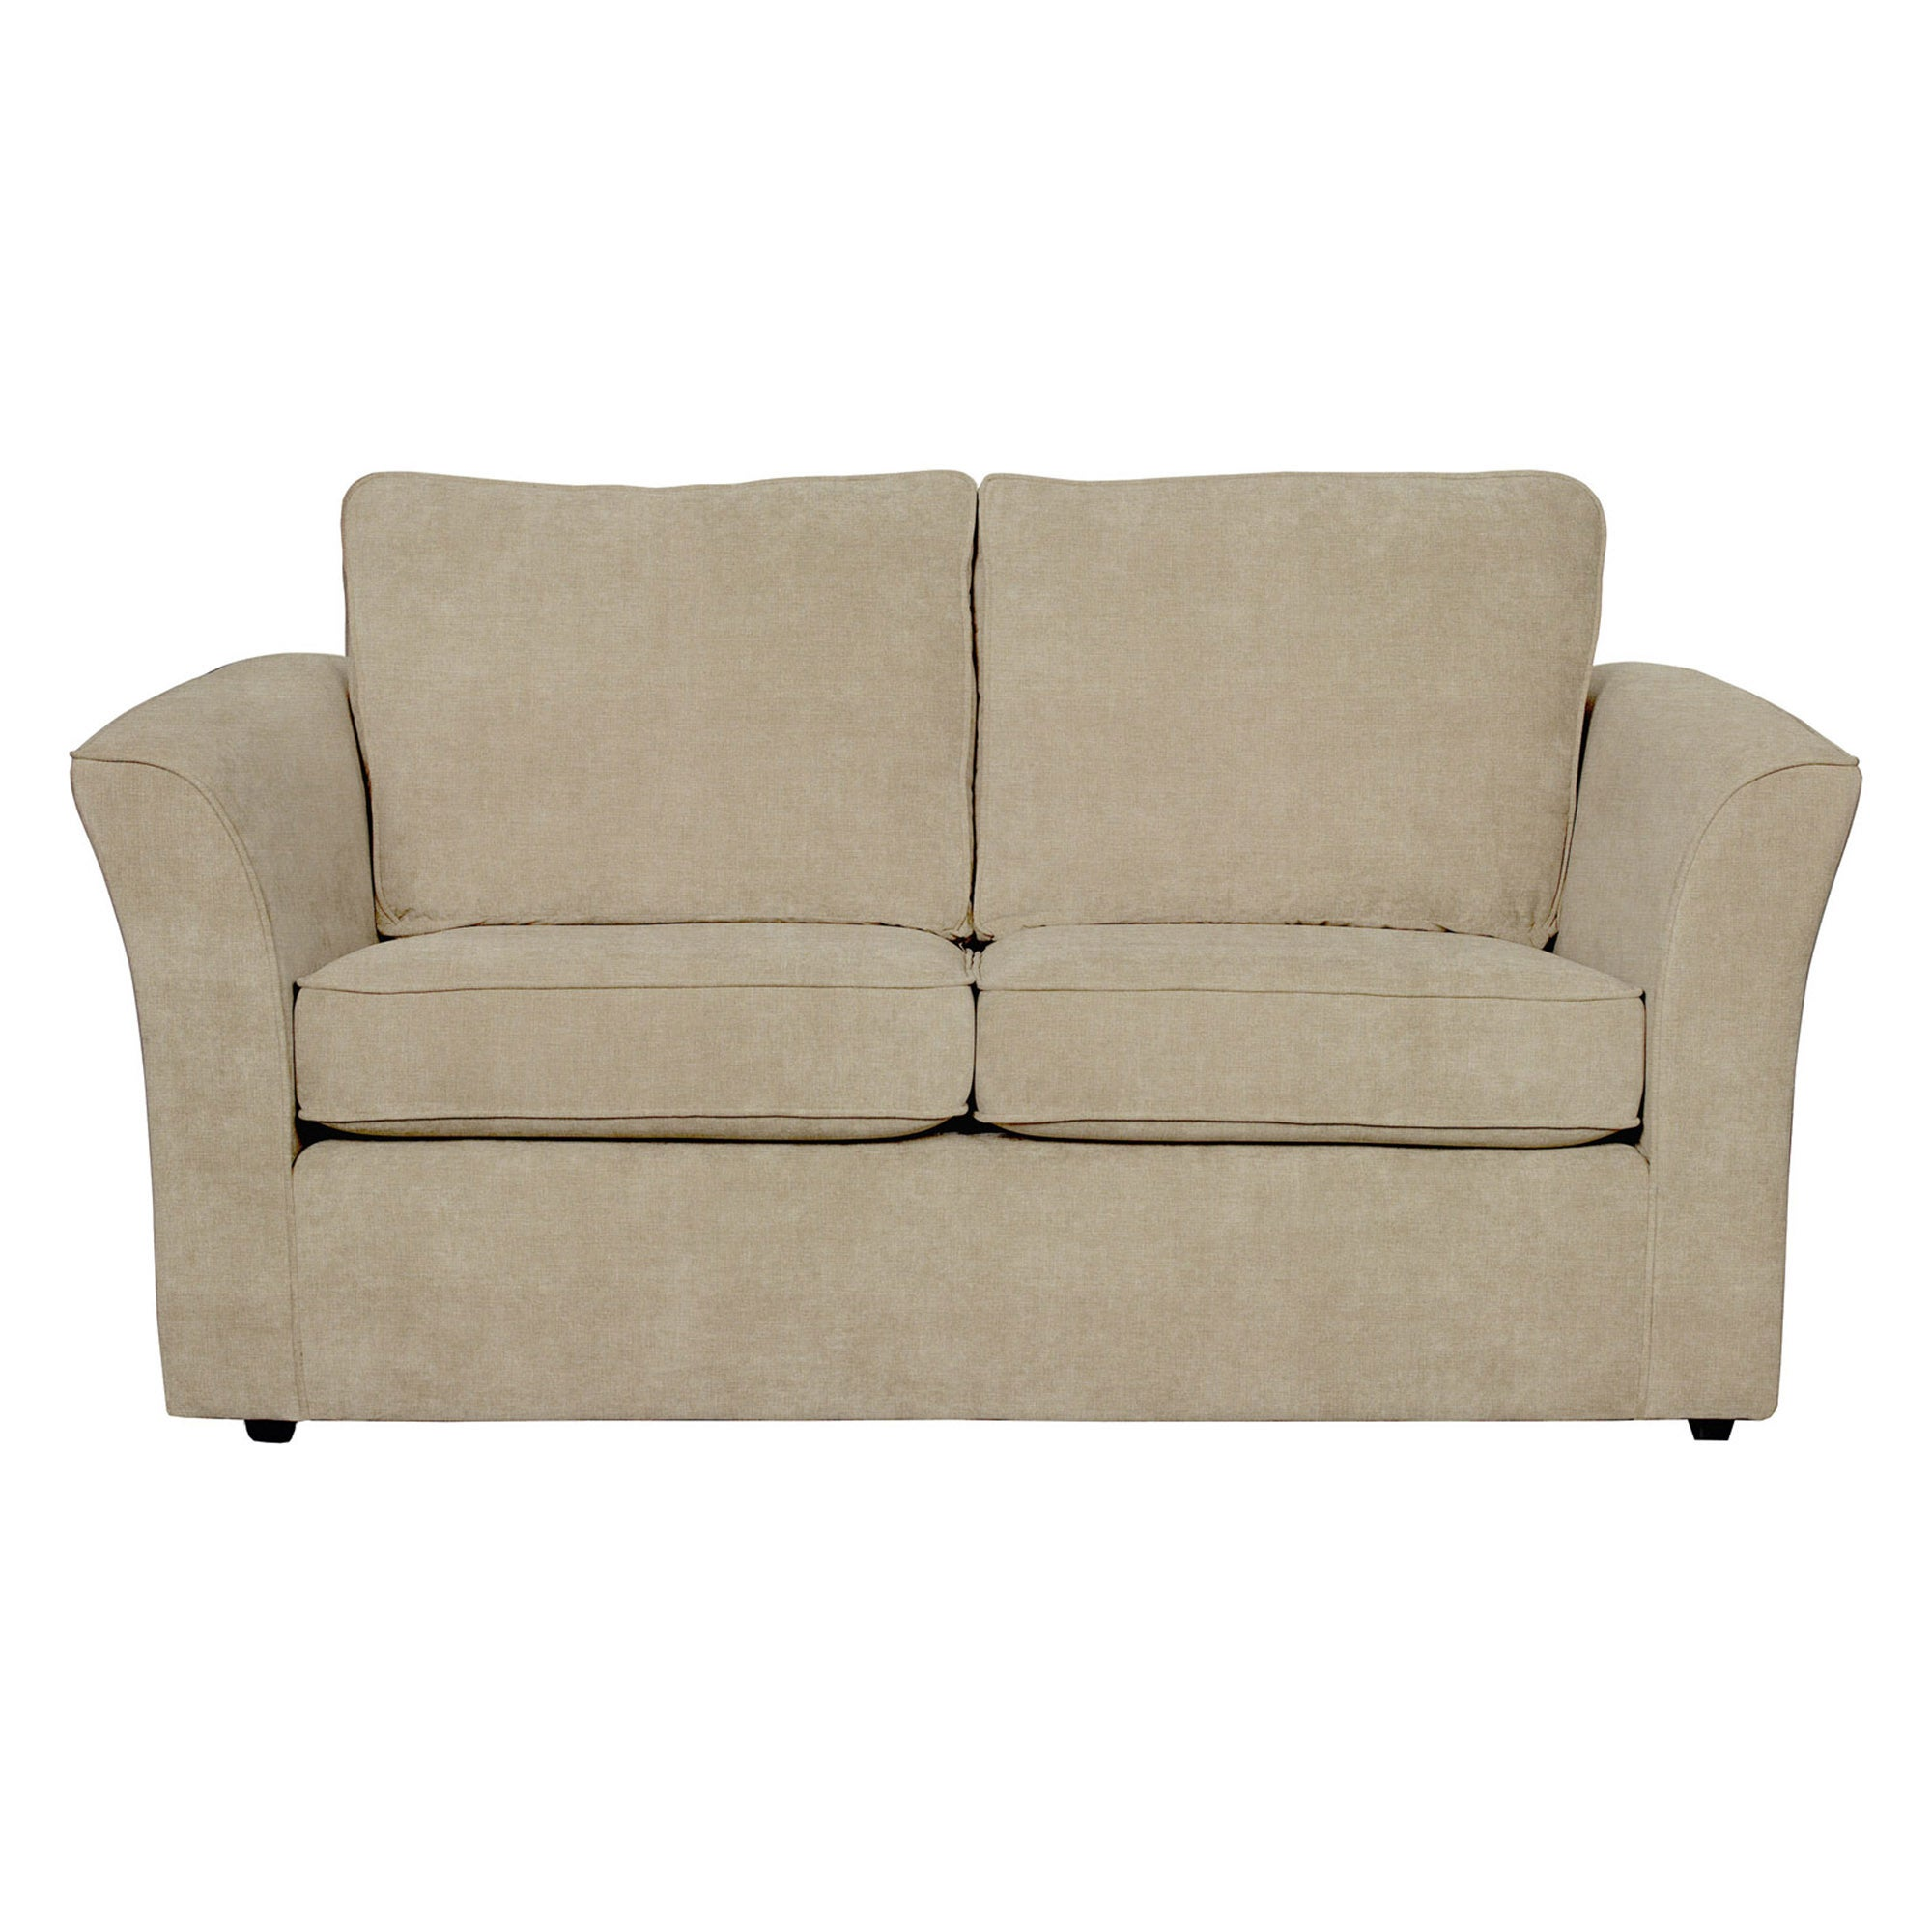 Harlow Sofa Collection